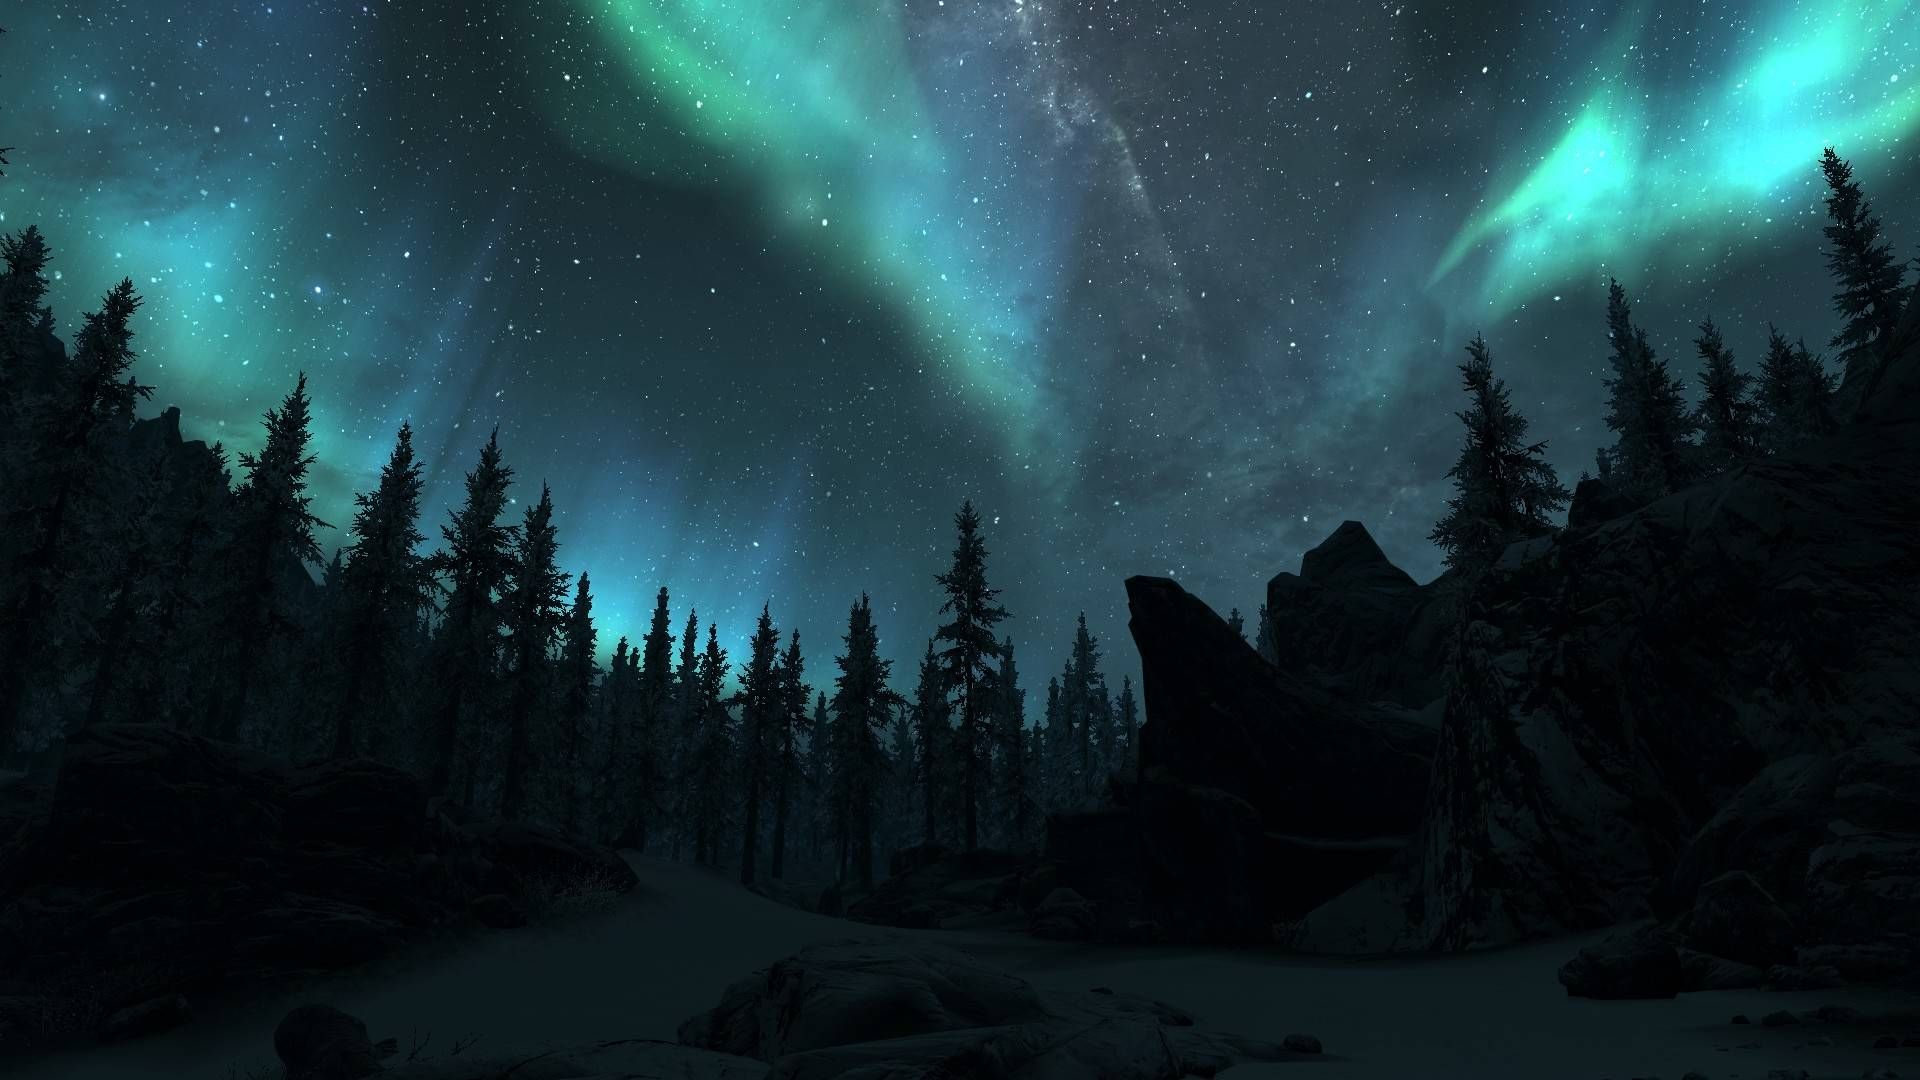 Pin By Delaney Flatford On The Odyssey Northern Lights Wallpaper Skyrim Wallpaper Landscape Wallpaper